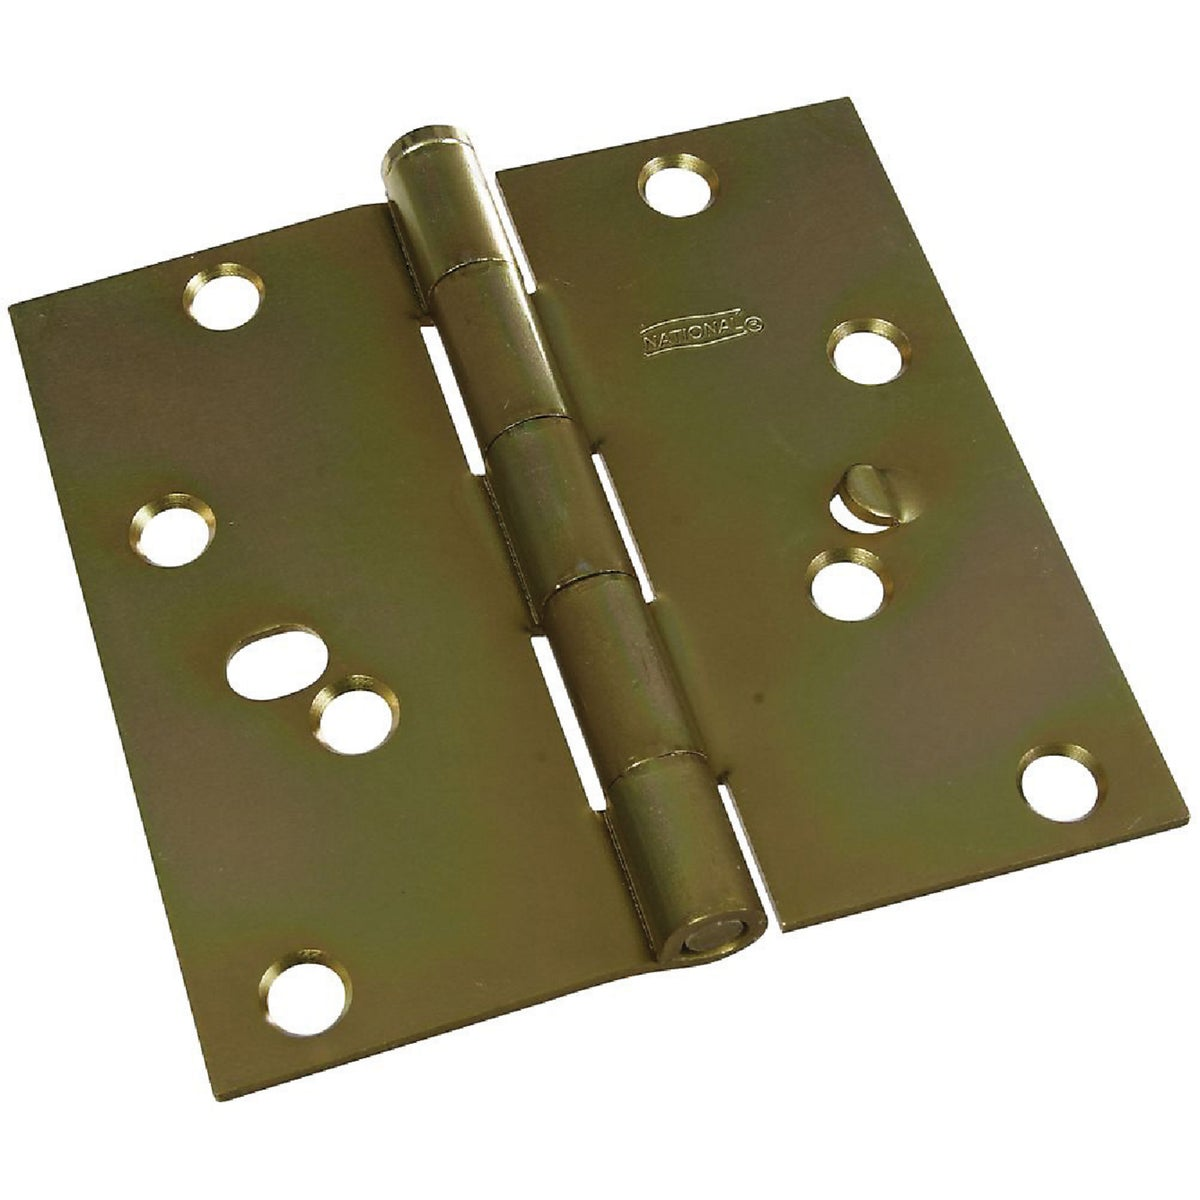 "4"" SECURITY STUD HINGE - N240259 by National Mfg Co"